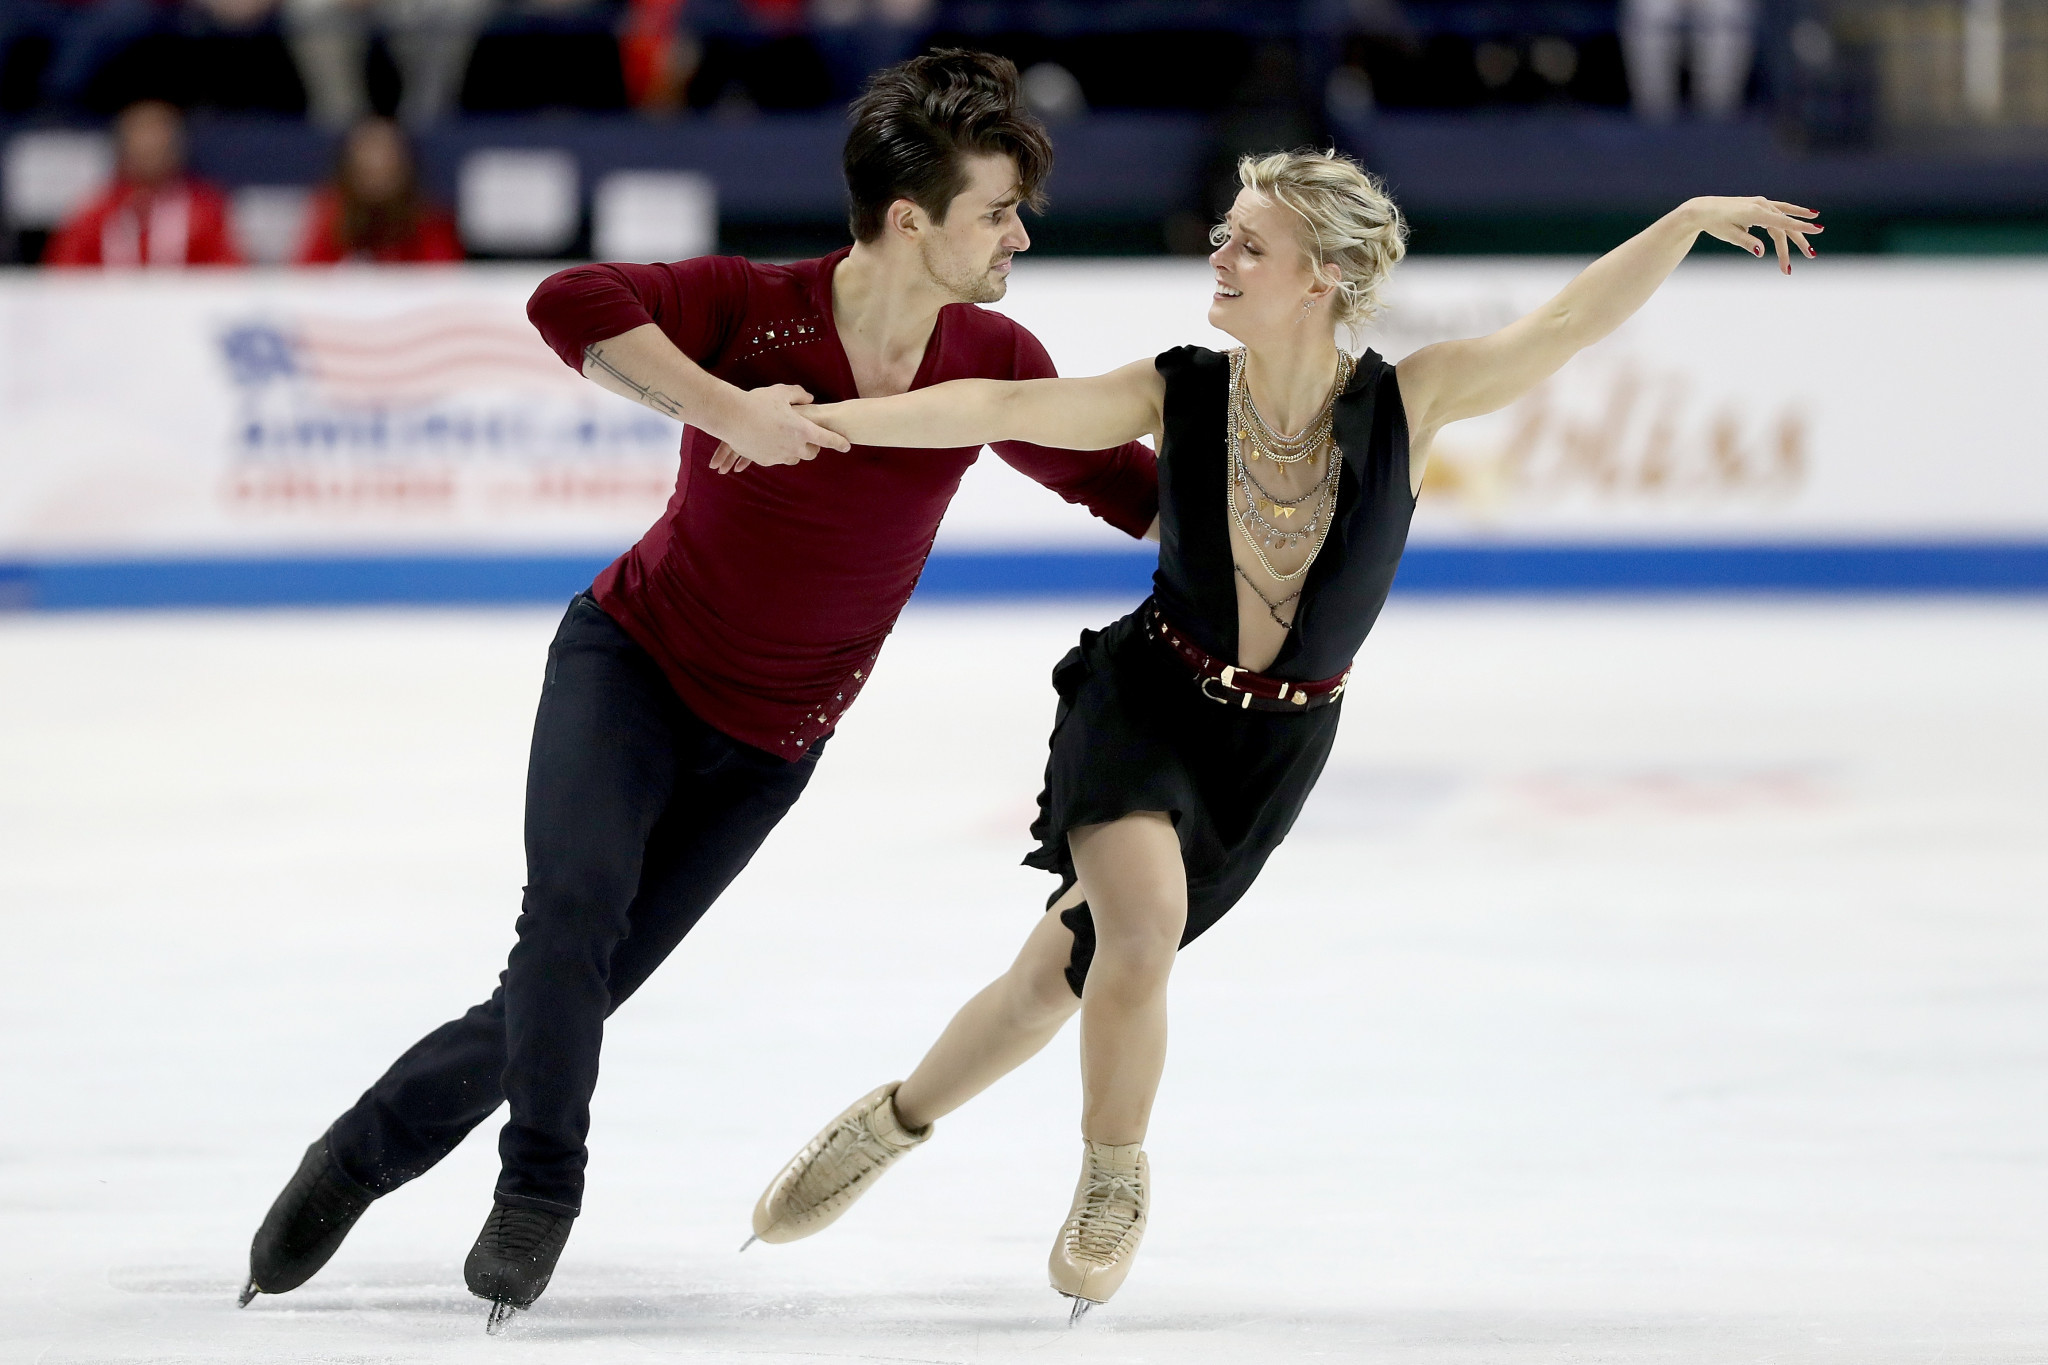 Madison Hubbell and Zachary Donohue are set to take part in the I.AM LIVE show ©Getty Images